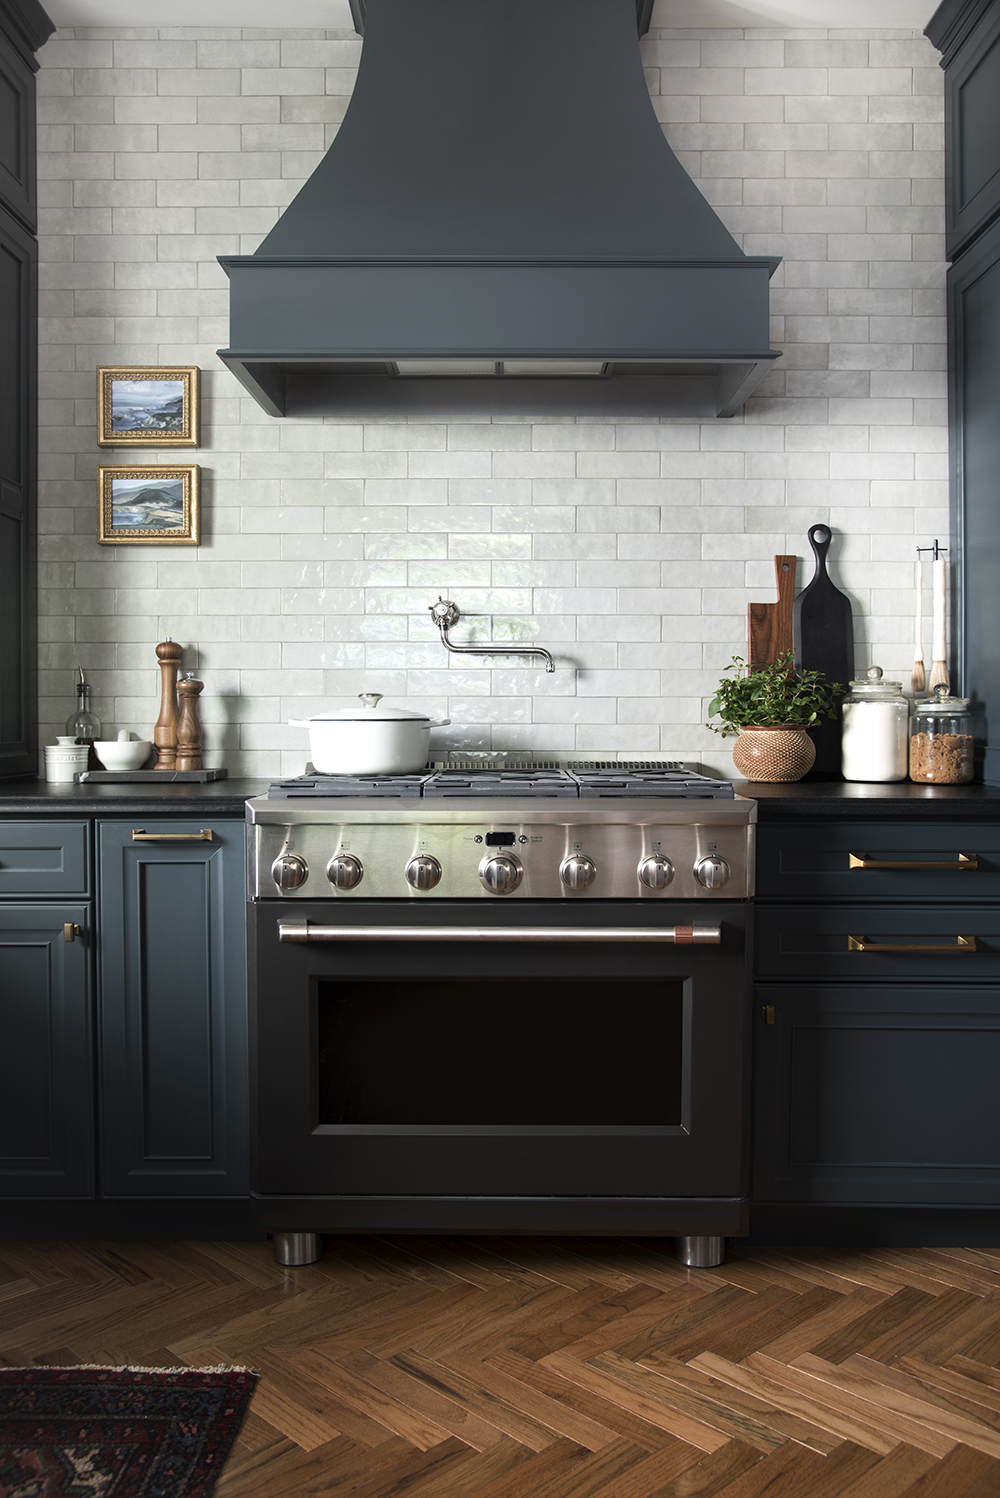 Design Discussion : Hardwoods in the Kitchen - roomfortuesday.com